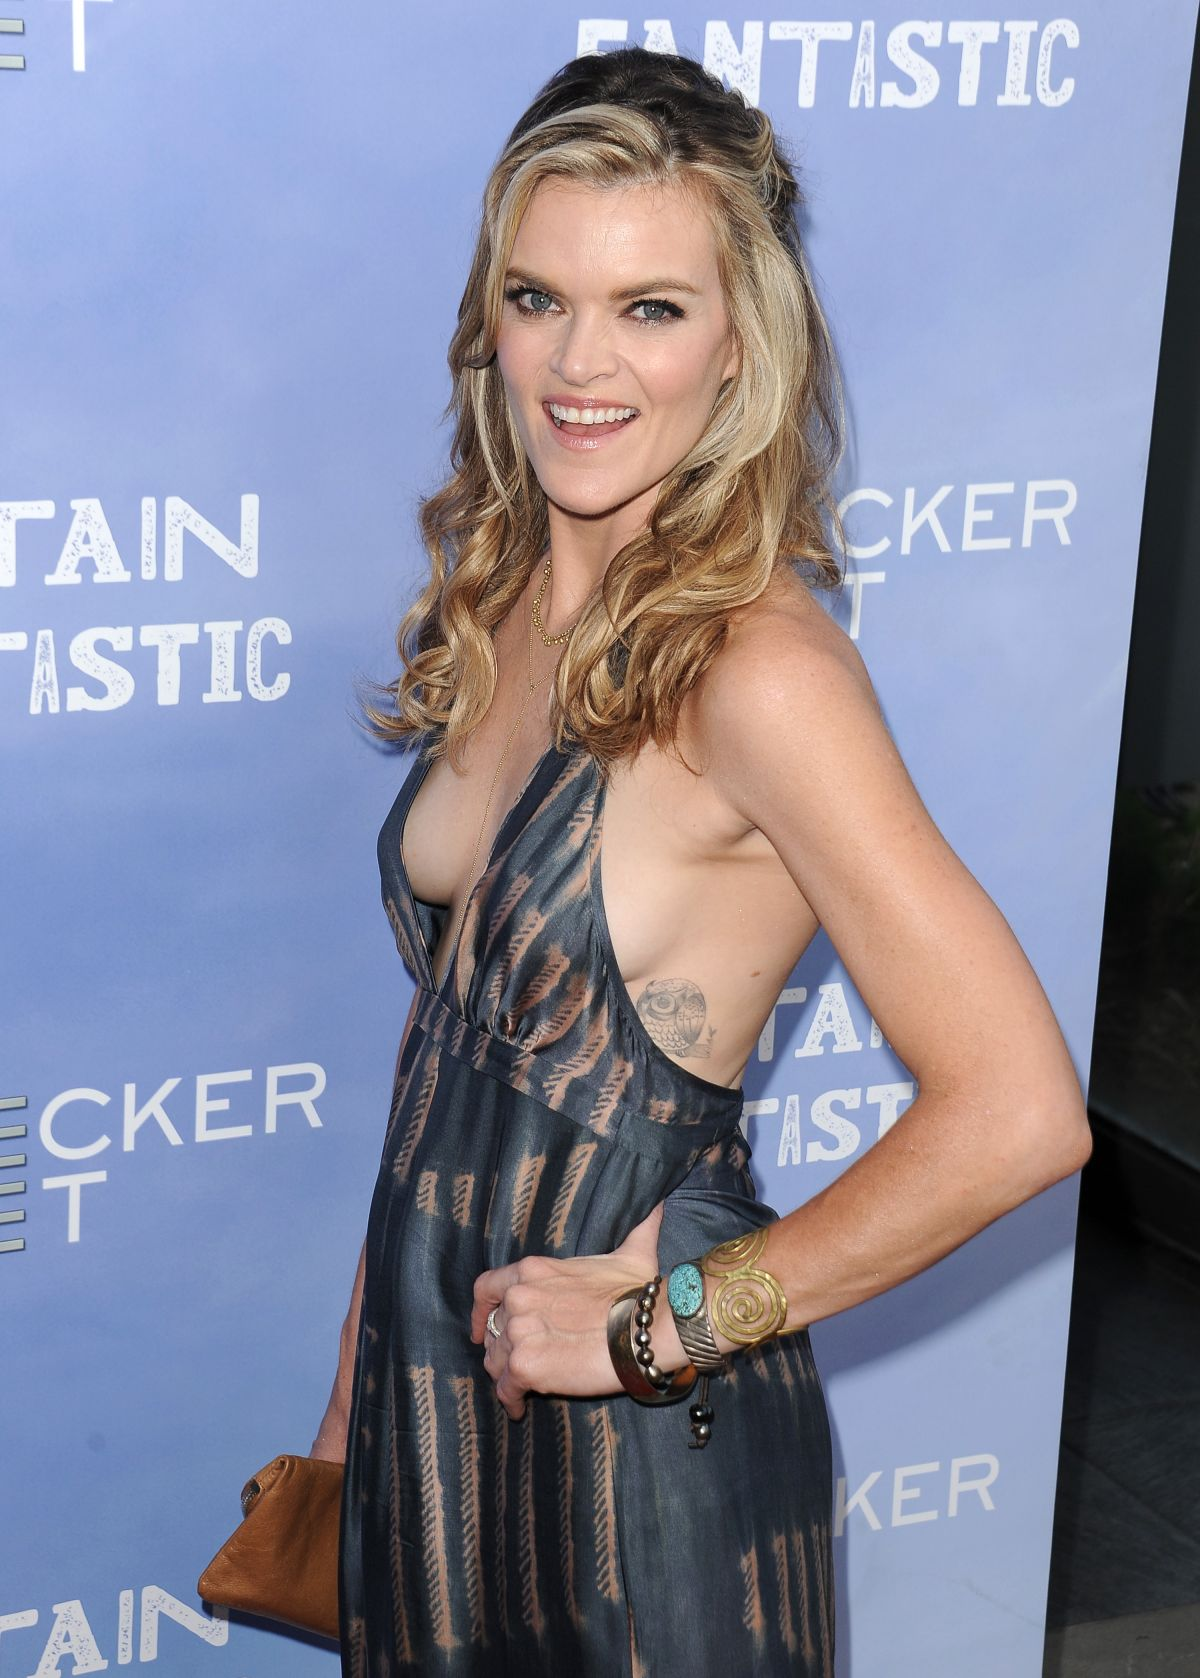 MISSI PYLE at 'Captain Fantastic' Premiere in Los Angeles 06/29/2016